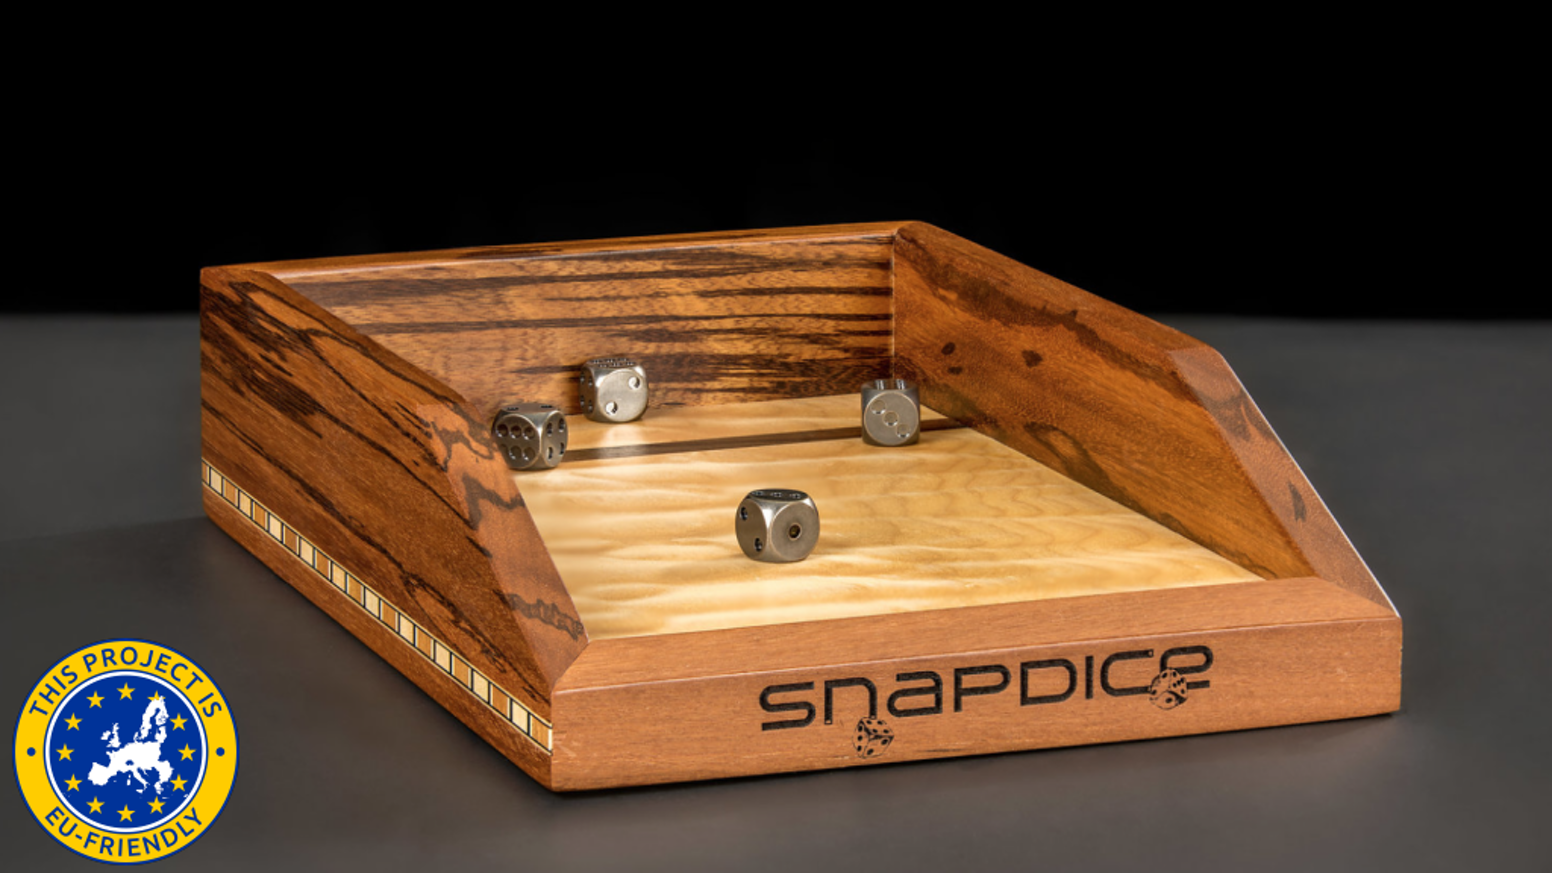 Premium Exotic Hardwoods. Perfectly Balanced Steel Dice. Rare Earth Magnets. Rolling the dice just became the focal point of your game.